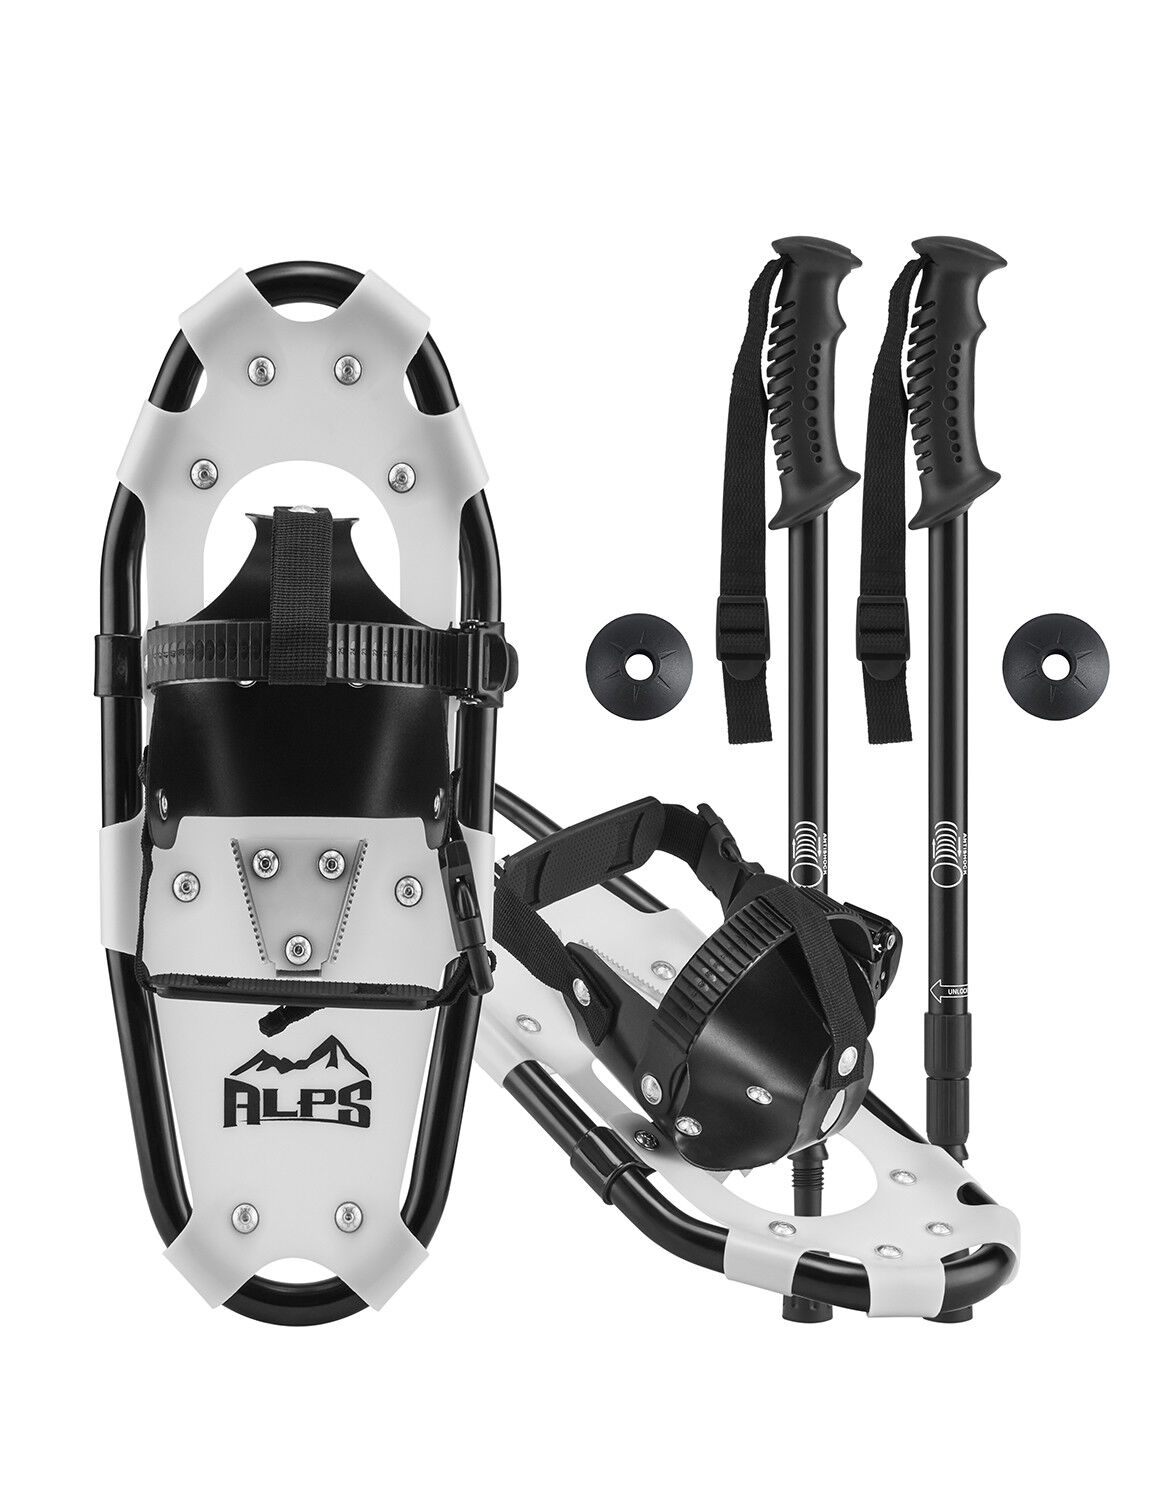 ALPS Kids Snowshoes For Youth&Boy&Girl+Optional Snowshoe Poles+Free bag  14 17 19  in stock